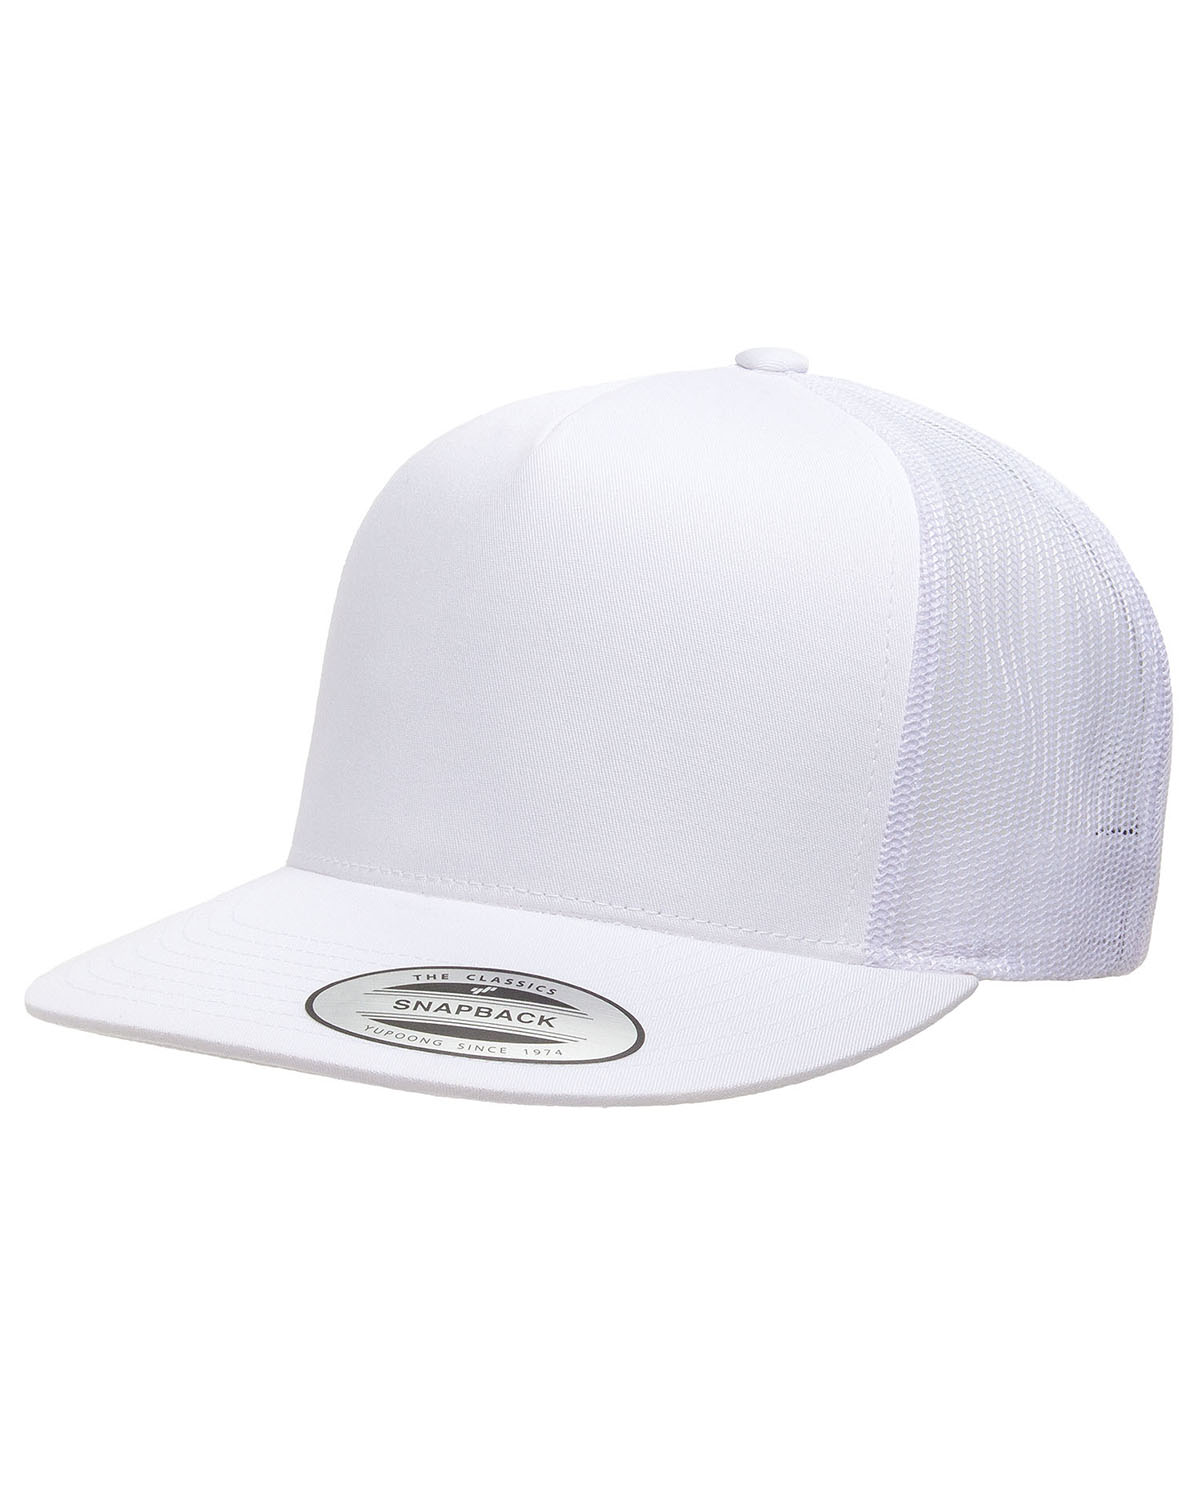 6006 Yupoong Adult 5 -Panel Classic Trucker Cap  f7bb53f2d80